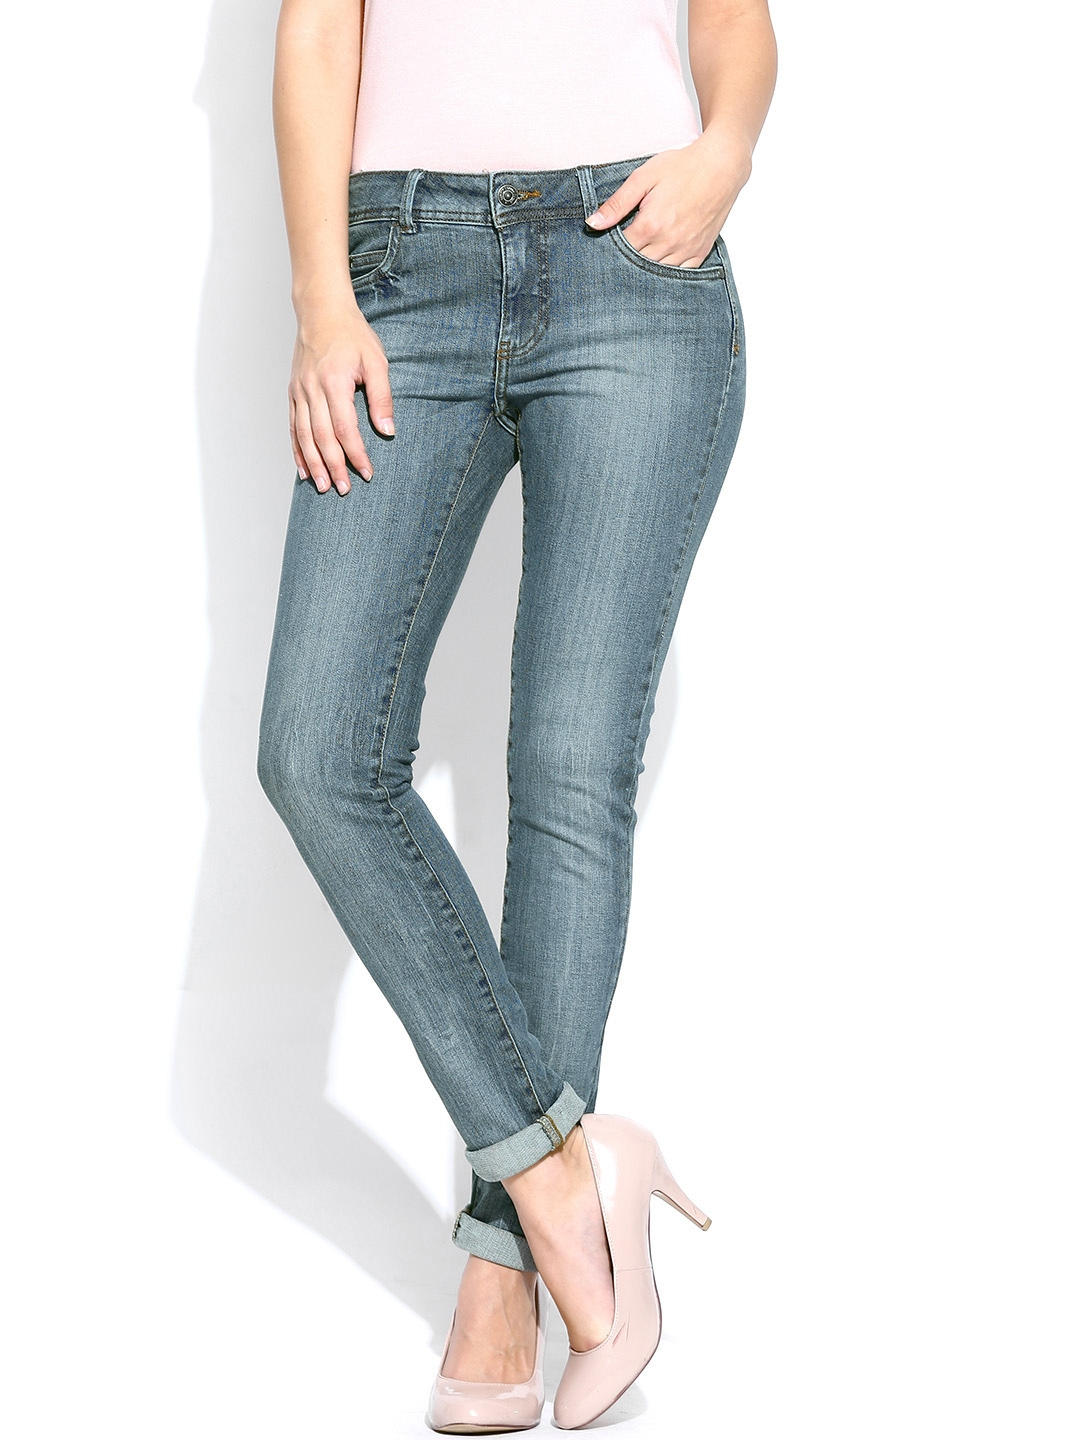 myntra vero moda blue skinny fit jeans 786183 buy myntra vero moda jeans at best price online. Black Bedroom Furniture Sets. Home Design Ideas